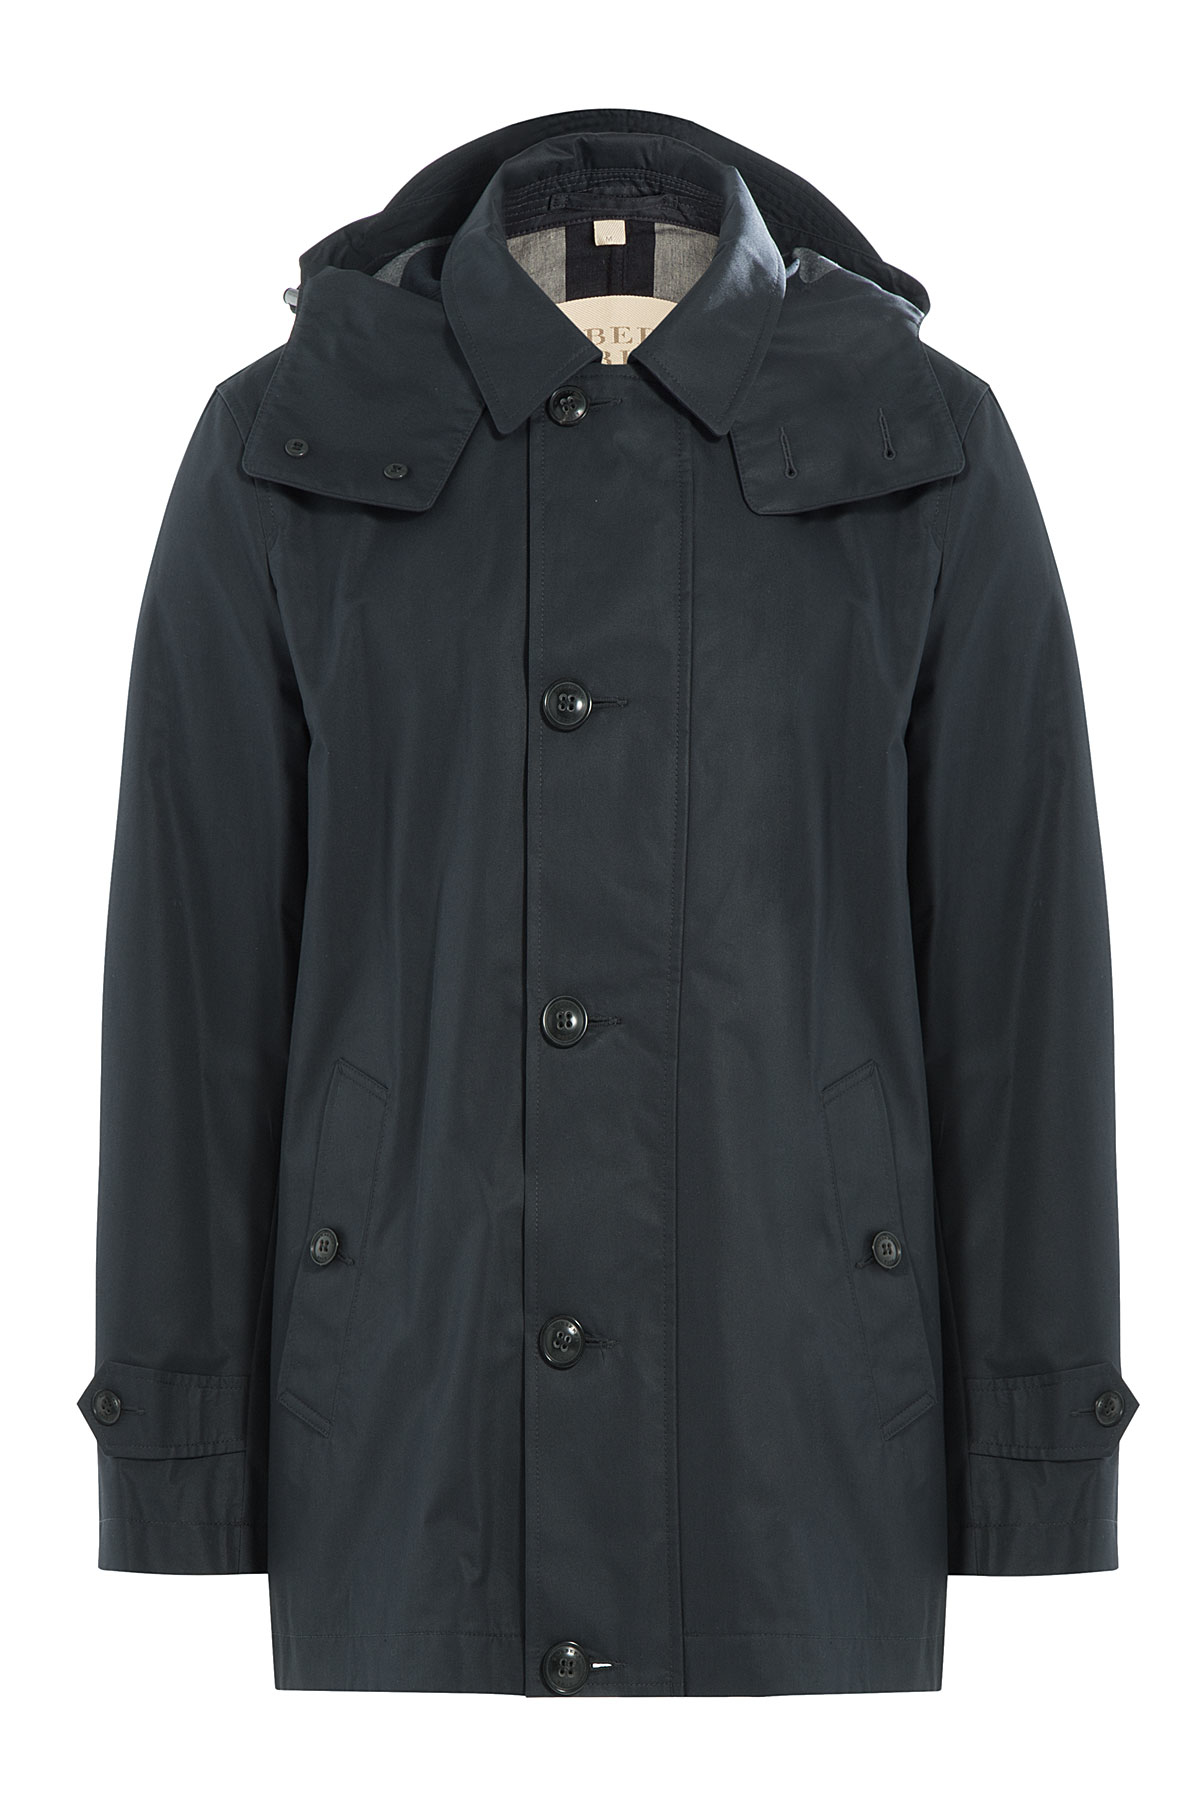 black trench coat with hood - photo #30